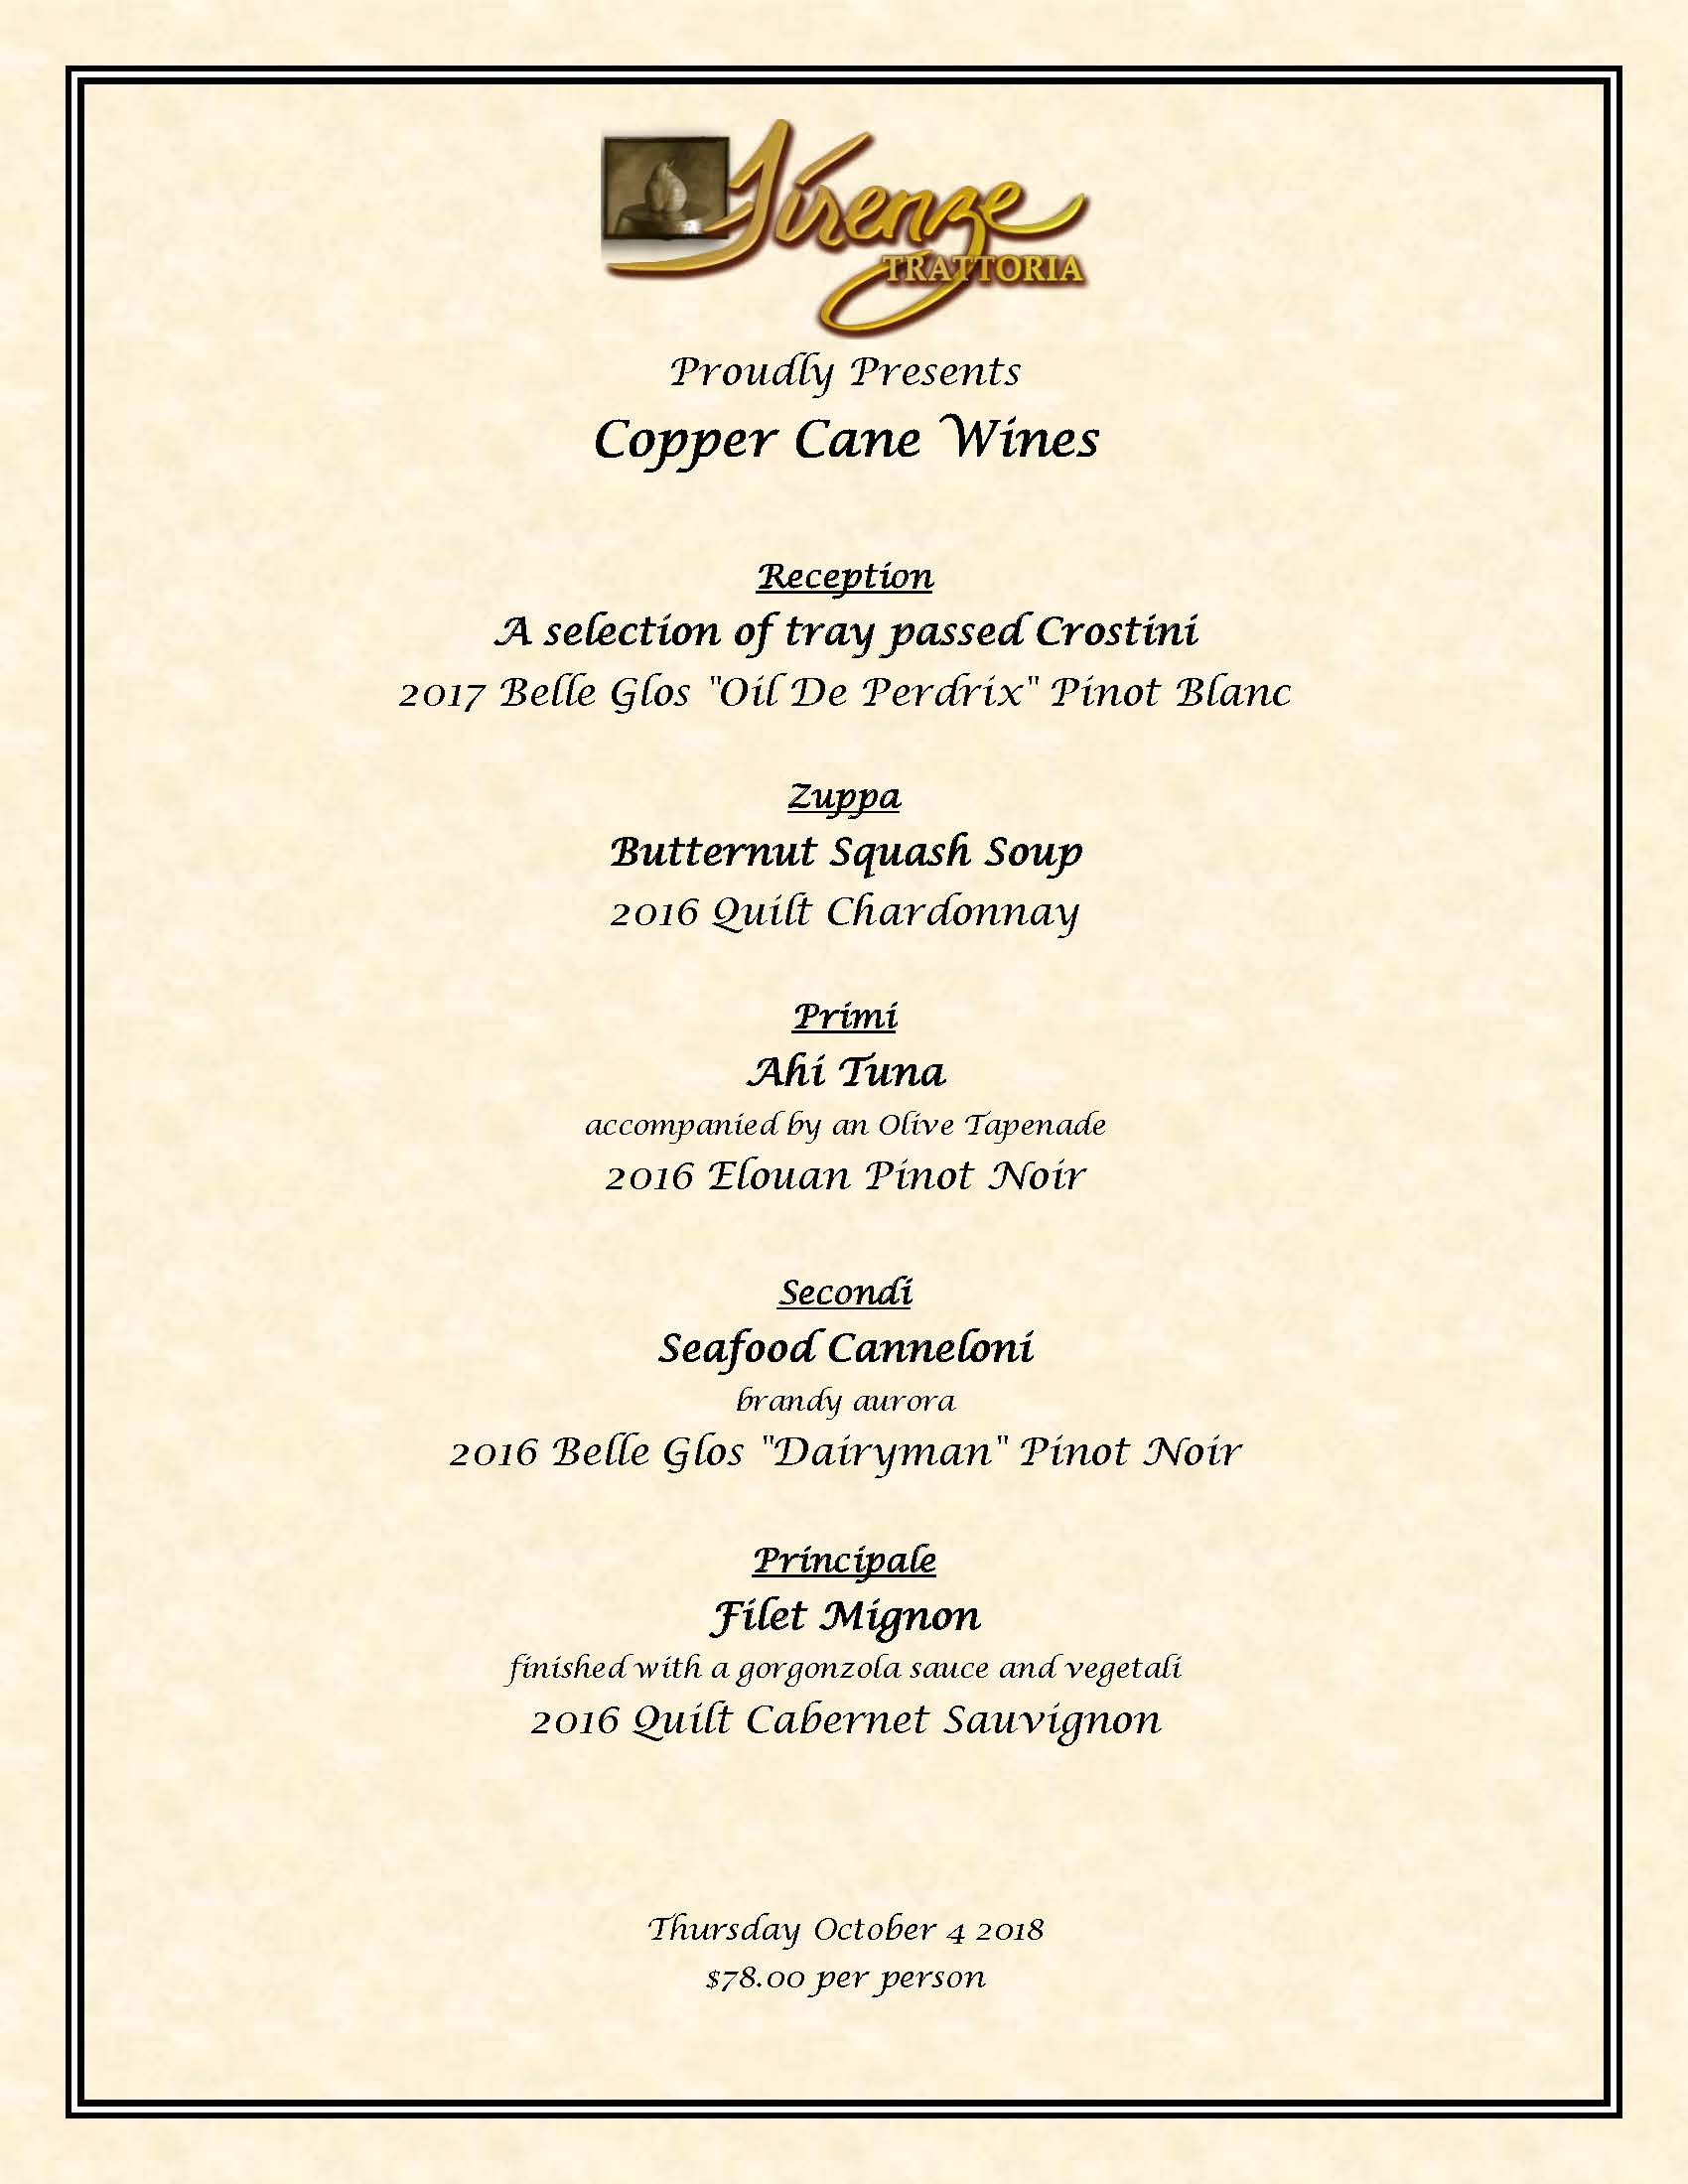 We Proudly Present Copper Cane Wines – October 4th 2018